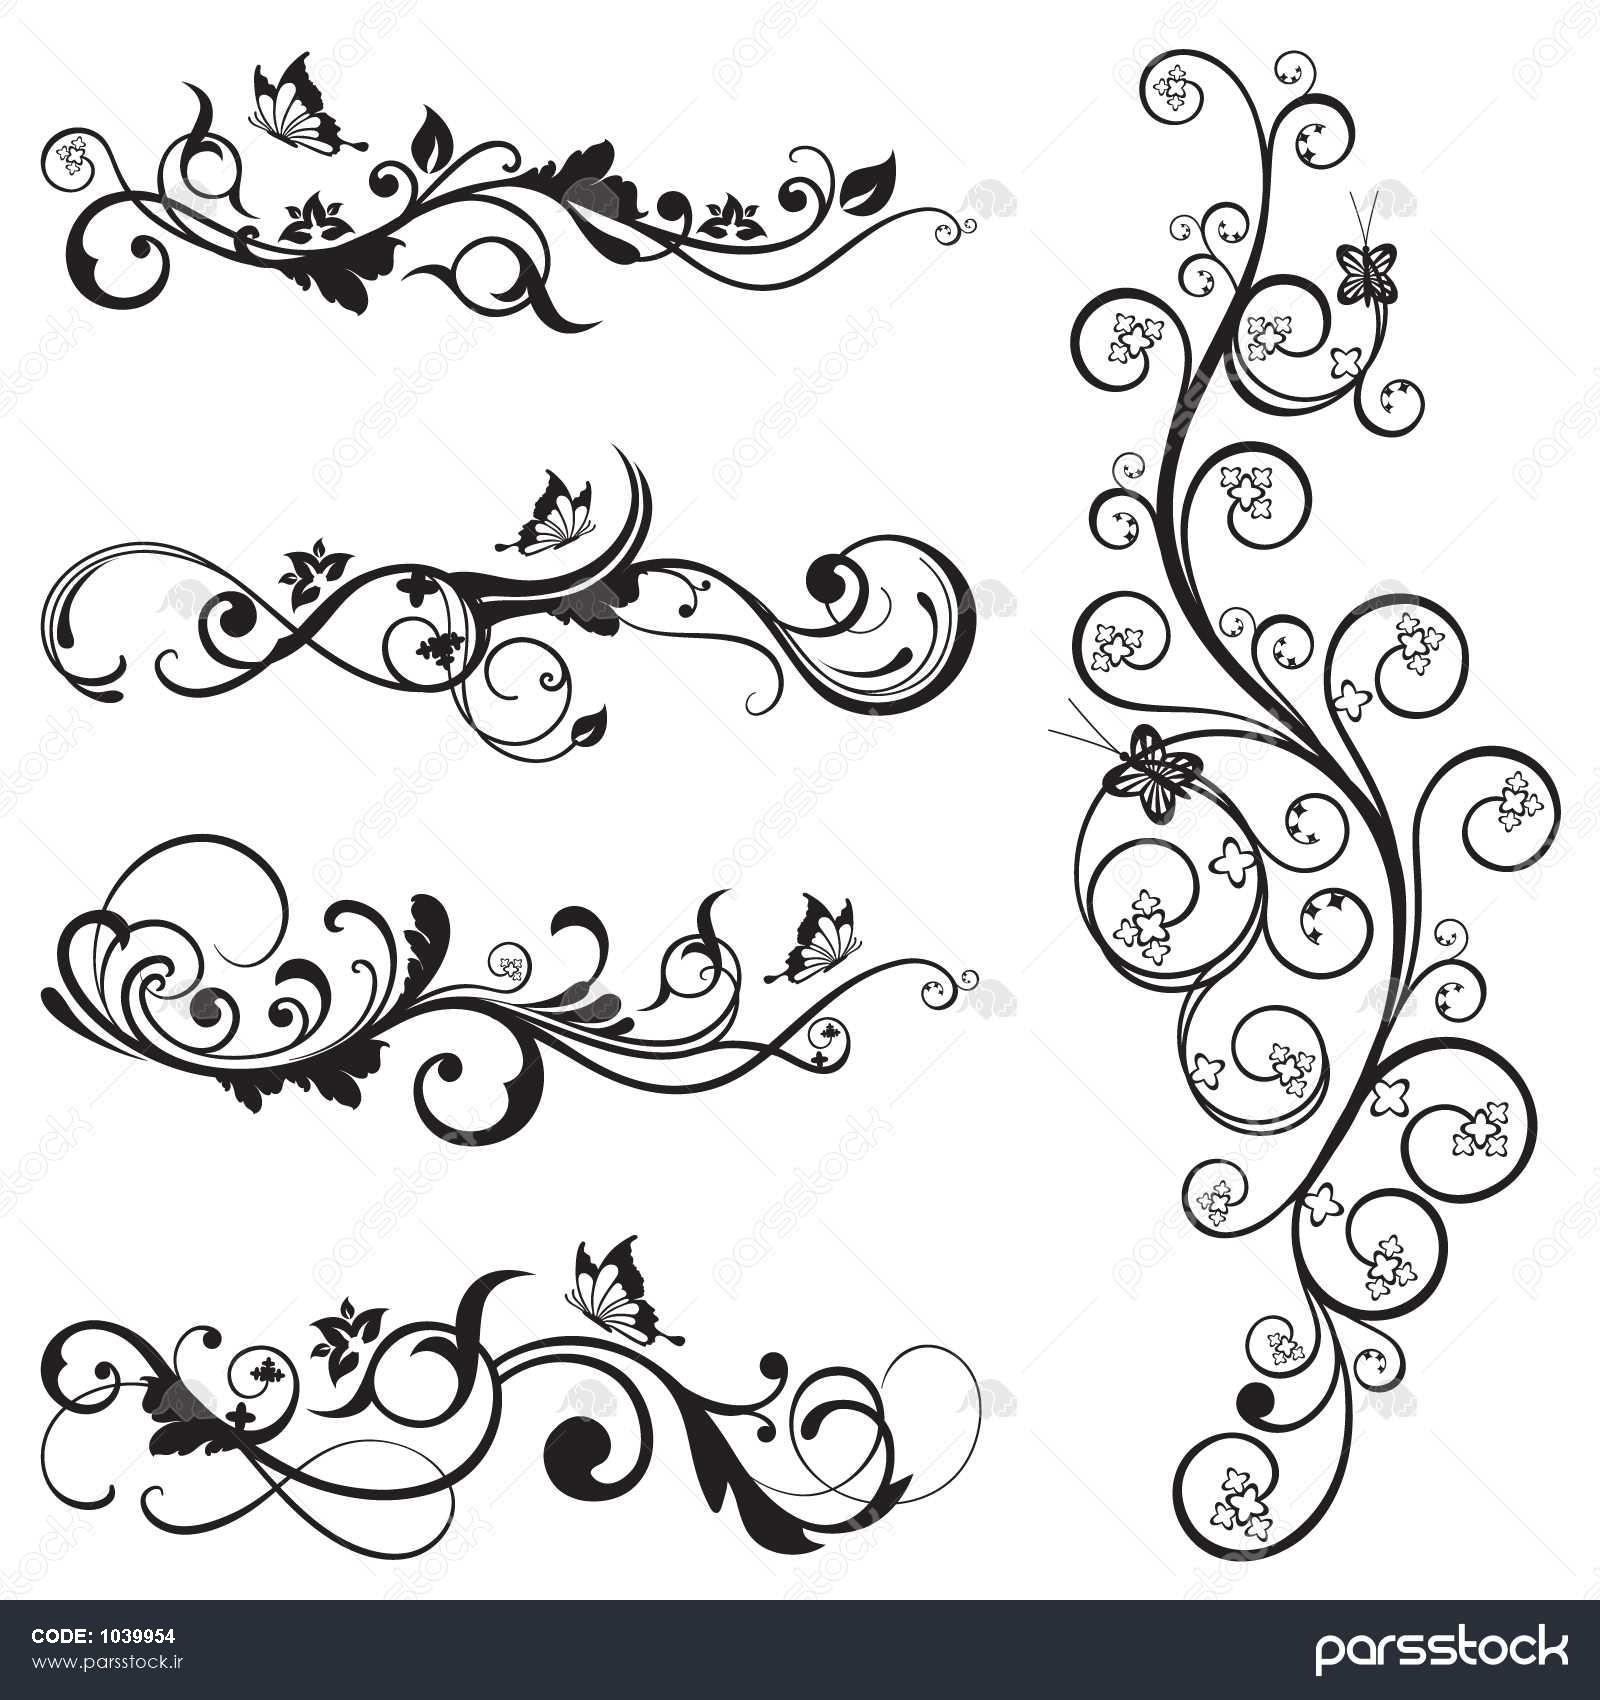 outline drawings of christmas trees